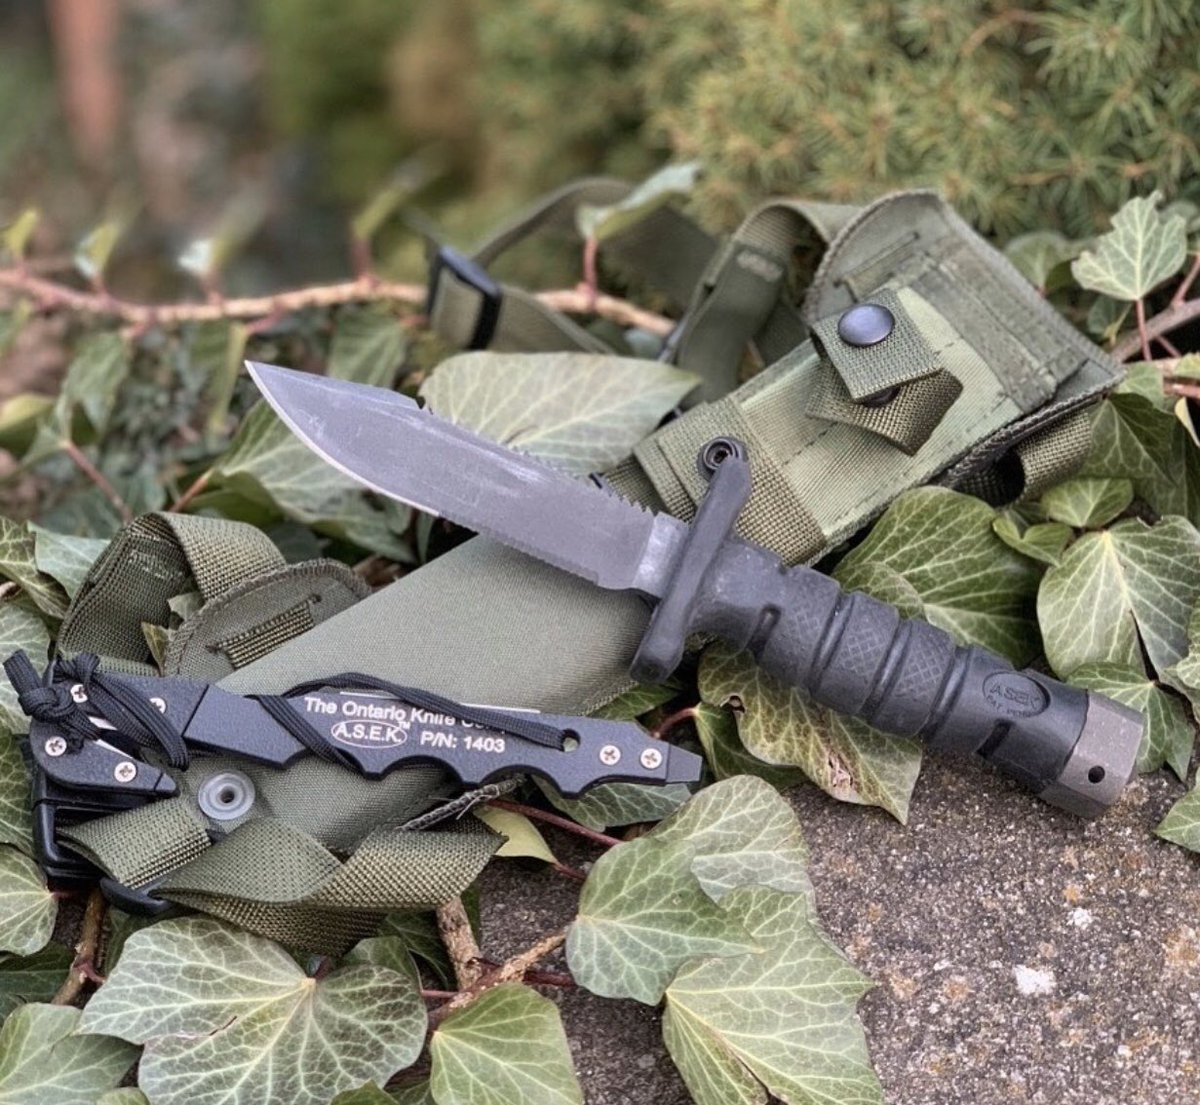 #ontarioknifecompany #ontarioknife #ontarioknives #ontarioknifeco #OKC1889 #MadeinUSA #knife #blade #fixedblade #military #strapcutter #ASEKsurvivalsystem #ASEK #hunting #camping #hiking #outdoors #tactical #bushcraft #rescue #tools #edc #adventureculture #wildernessculture pic.twitter.com/Pm7K34Gqnm